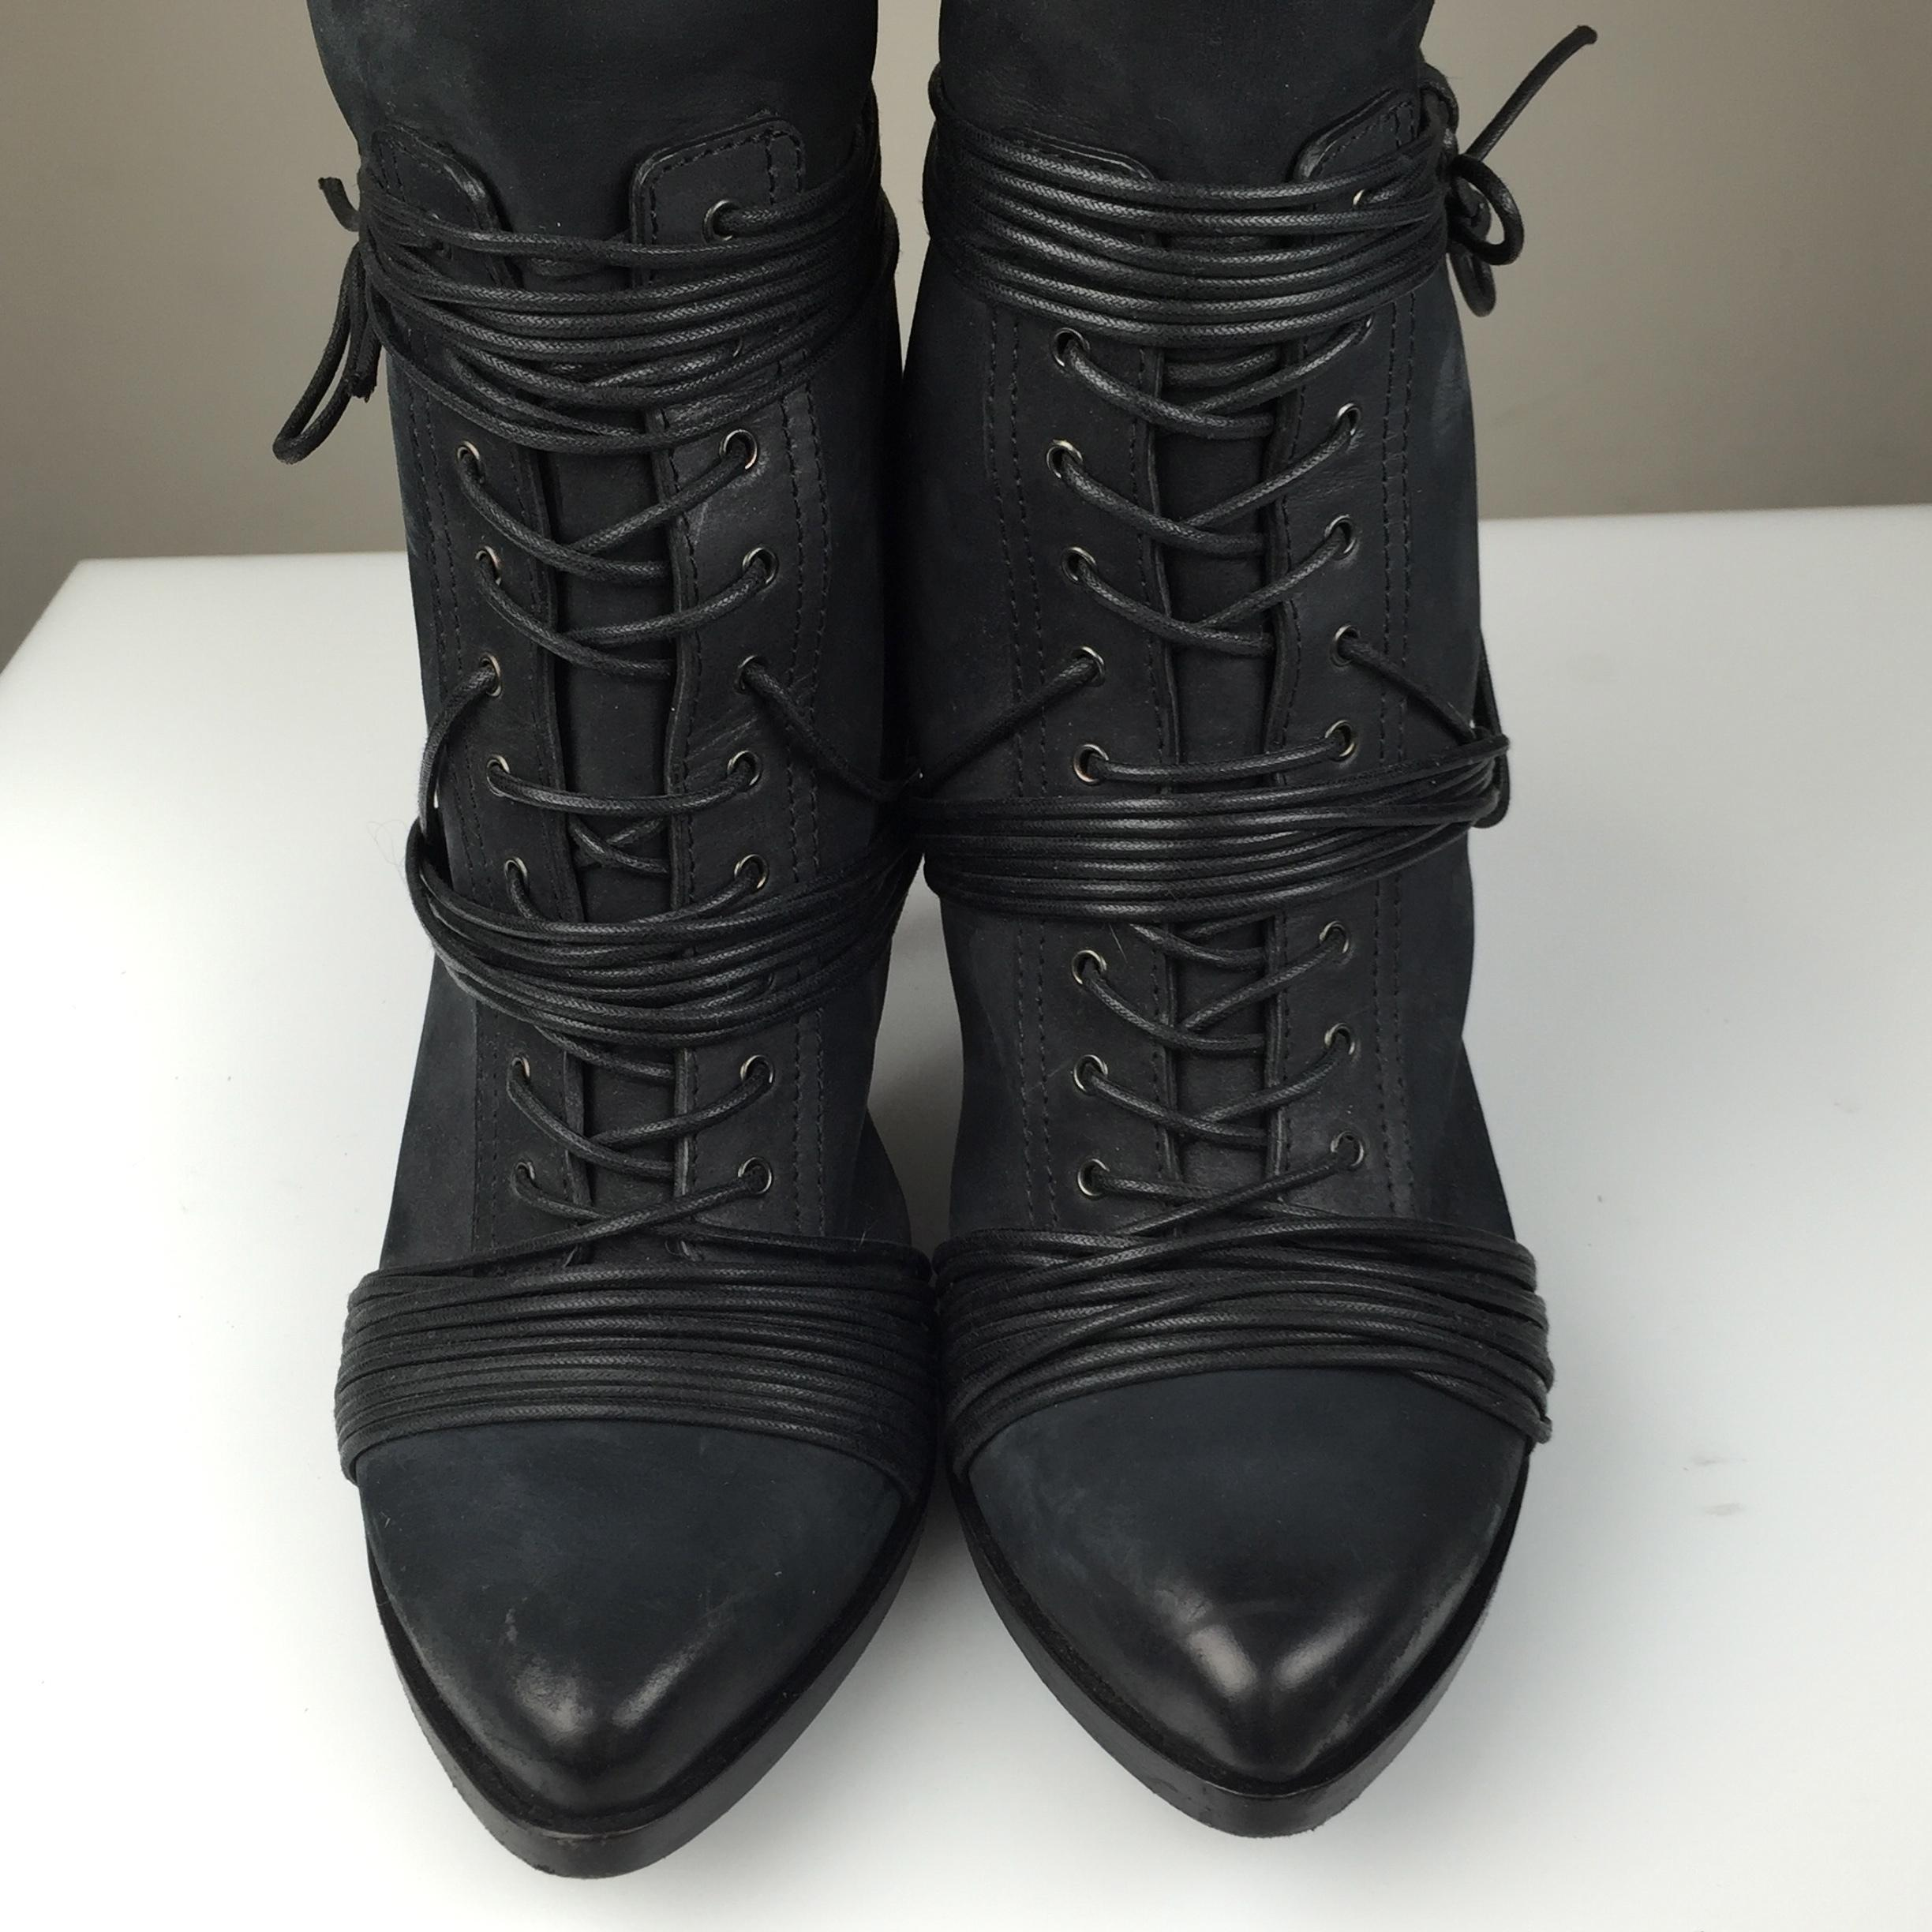 Givenchy Black Suede Tall With Heel And Laces Boots On